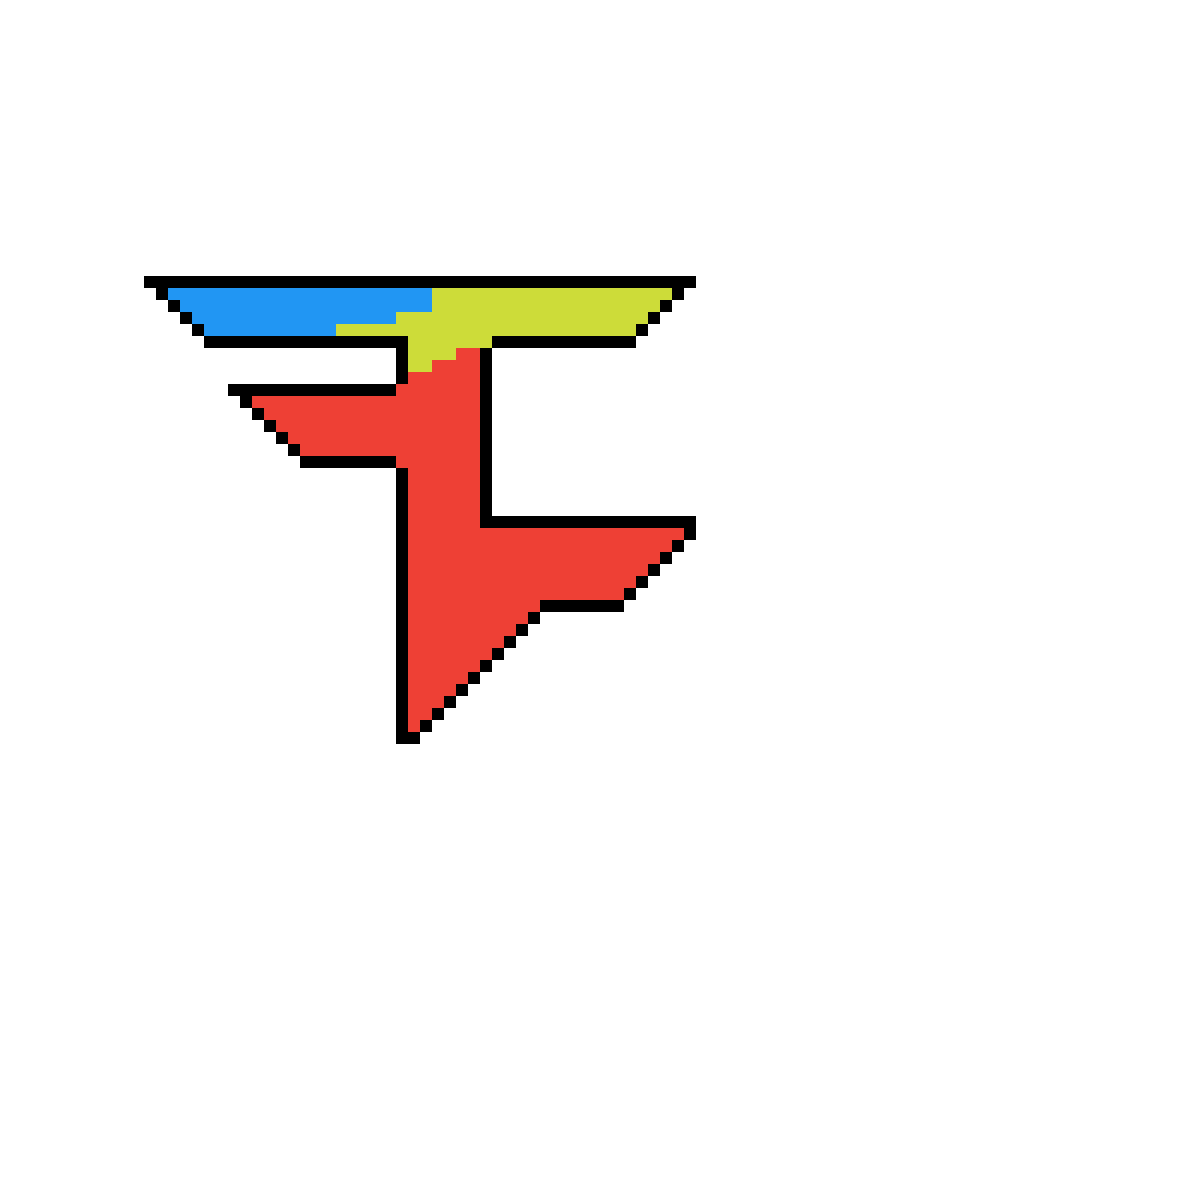 Faze up png. Pixilart by anonymous